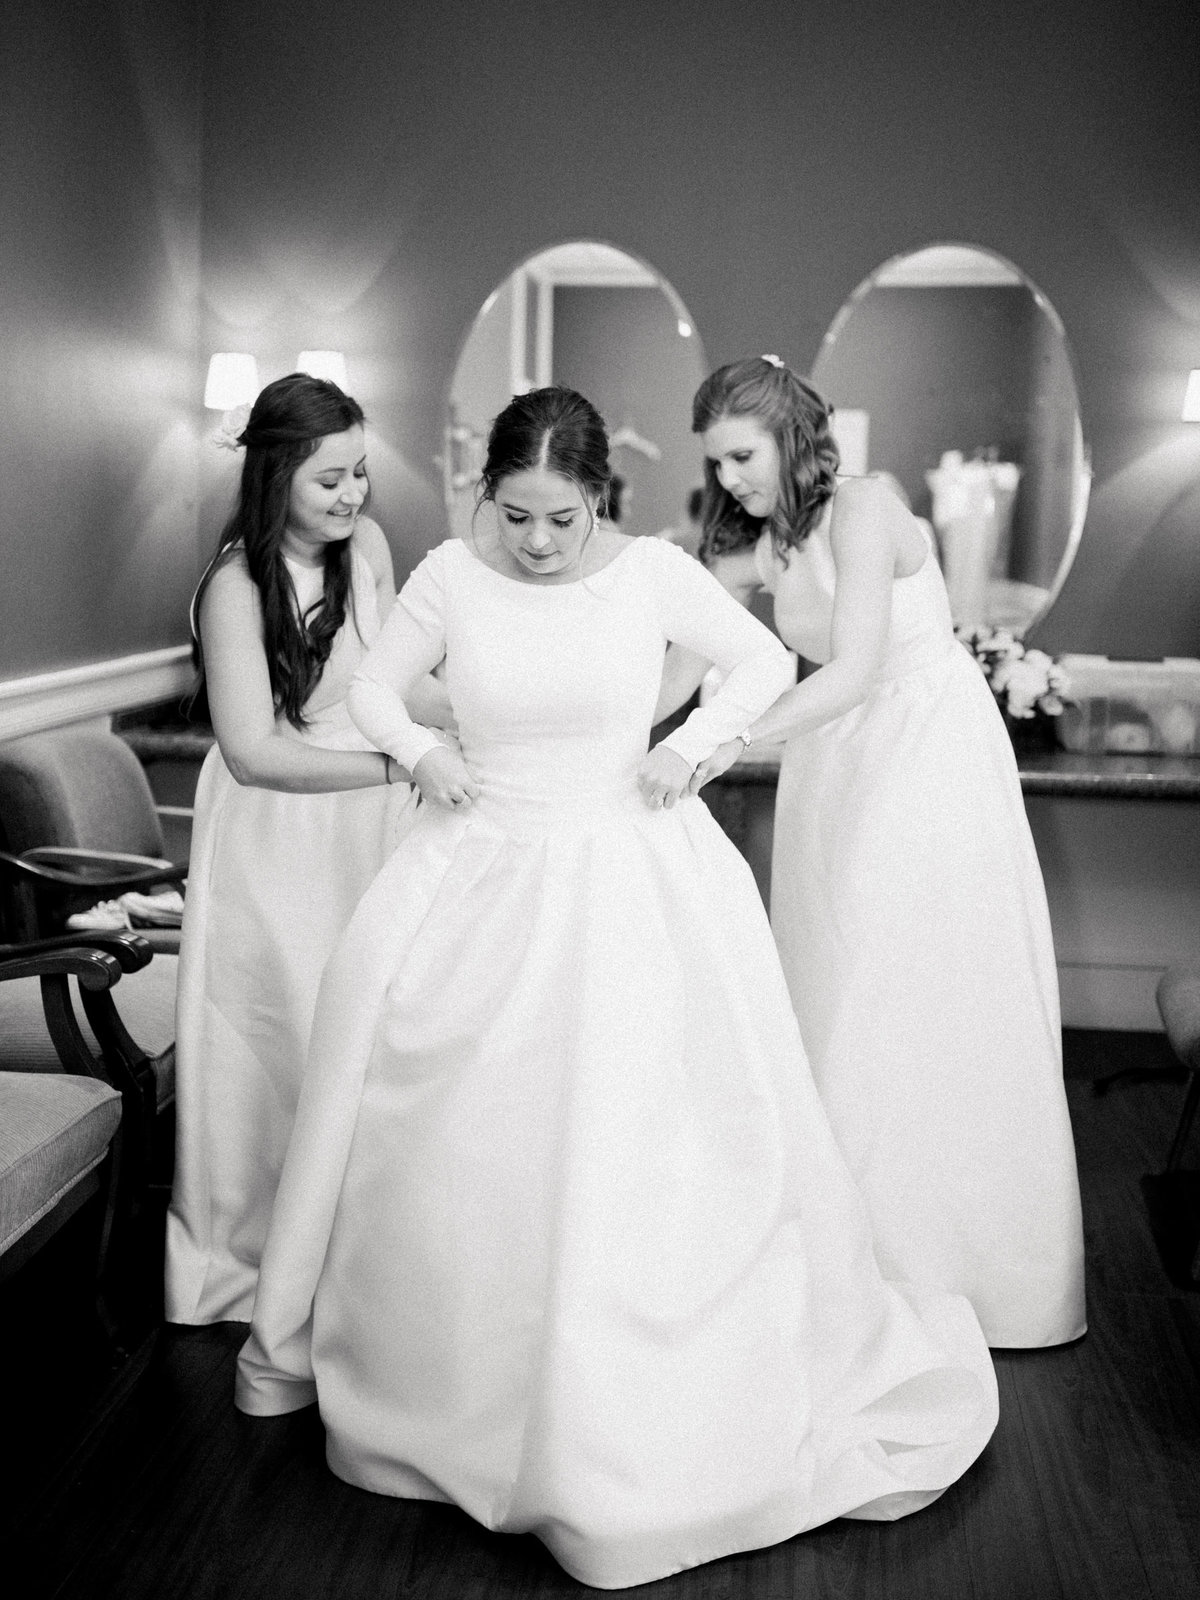 Courtney Hanson Photography - Festive Holiday Wedding in Dallas at Hickory Street Annex-0775